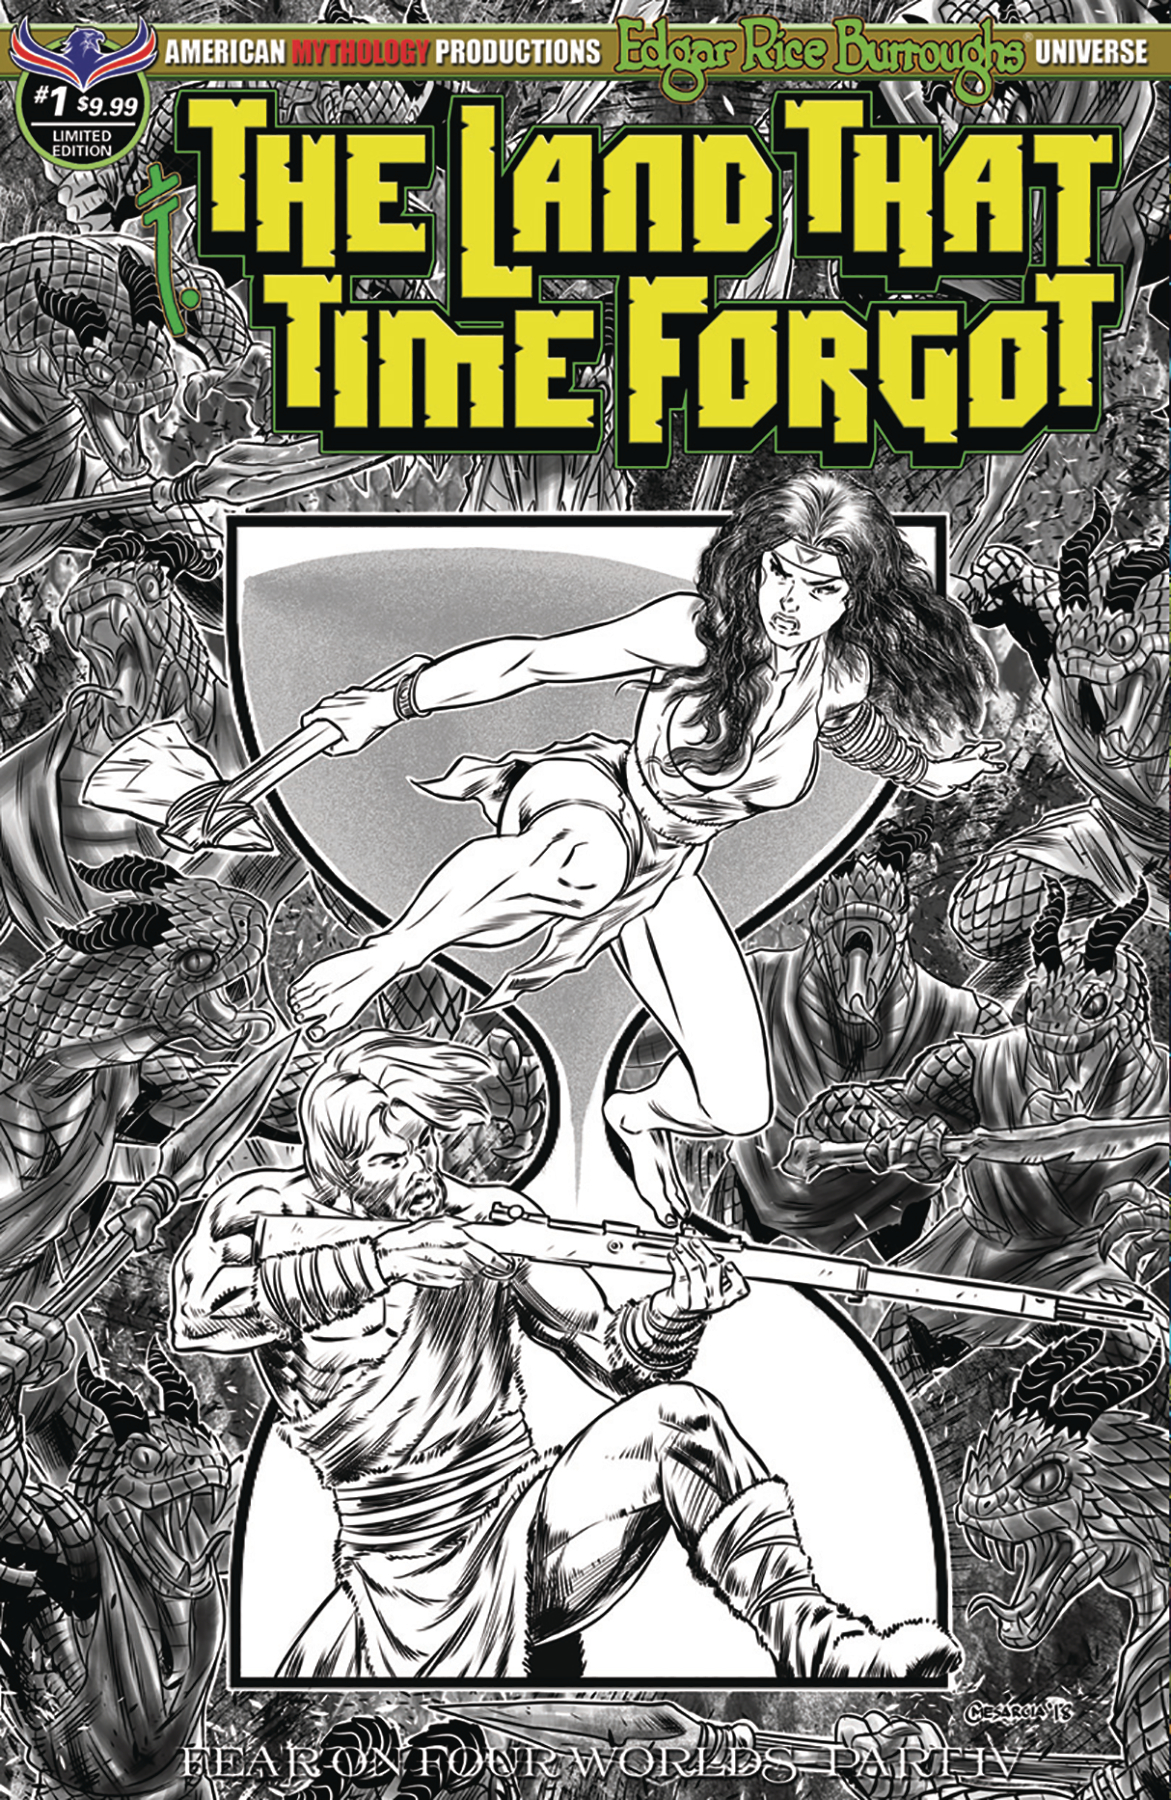 LAND THAT TIME FORGOT #1 FEAR ON FOUR WORLDS B&W LTD ED CVR